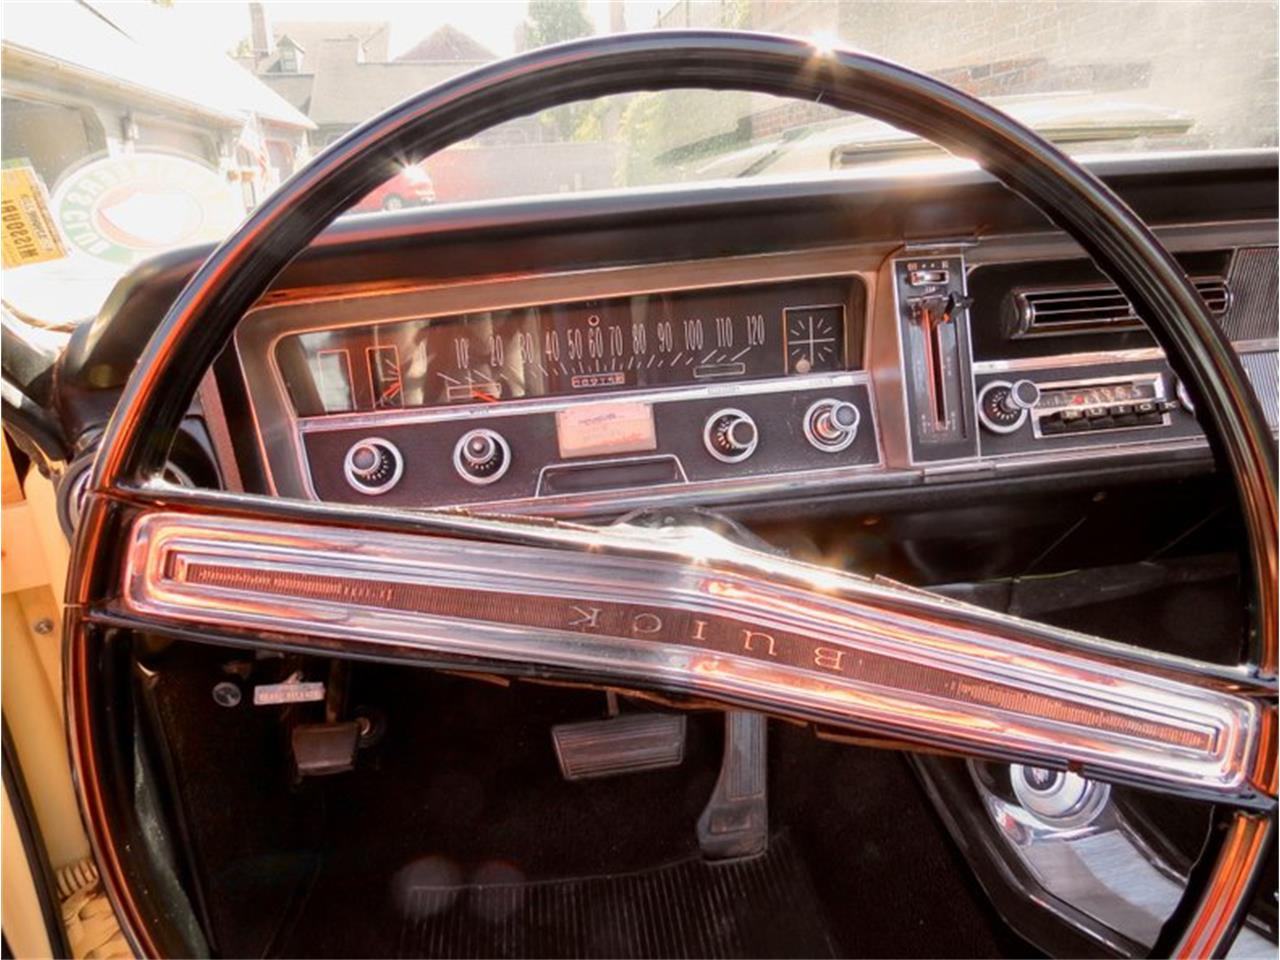 1965 Buick Skylark for sale in Dayton, OH – photo 17